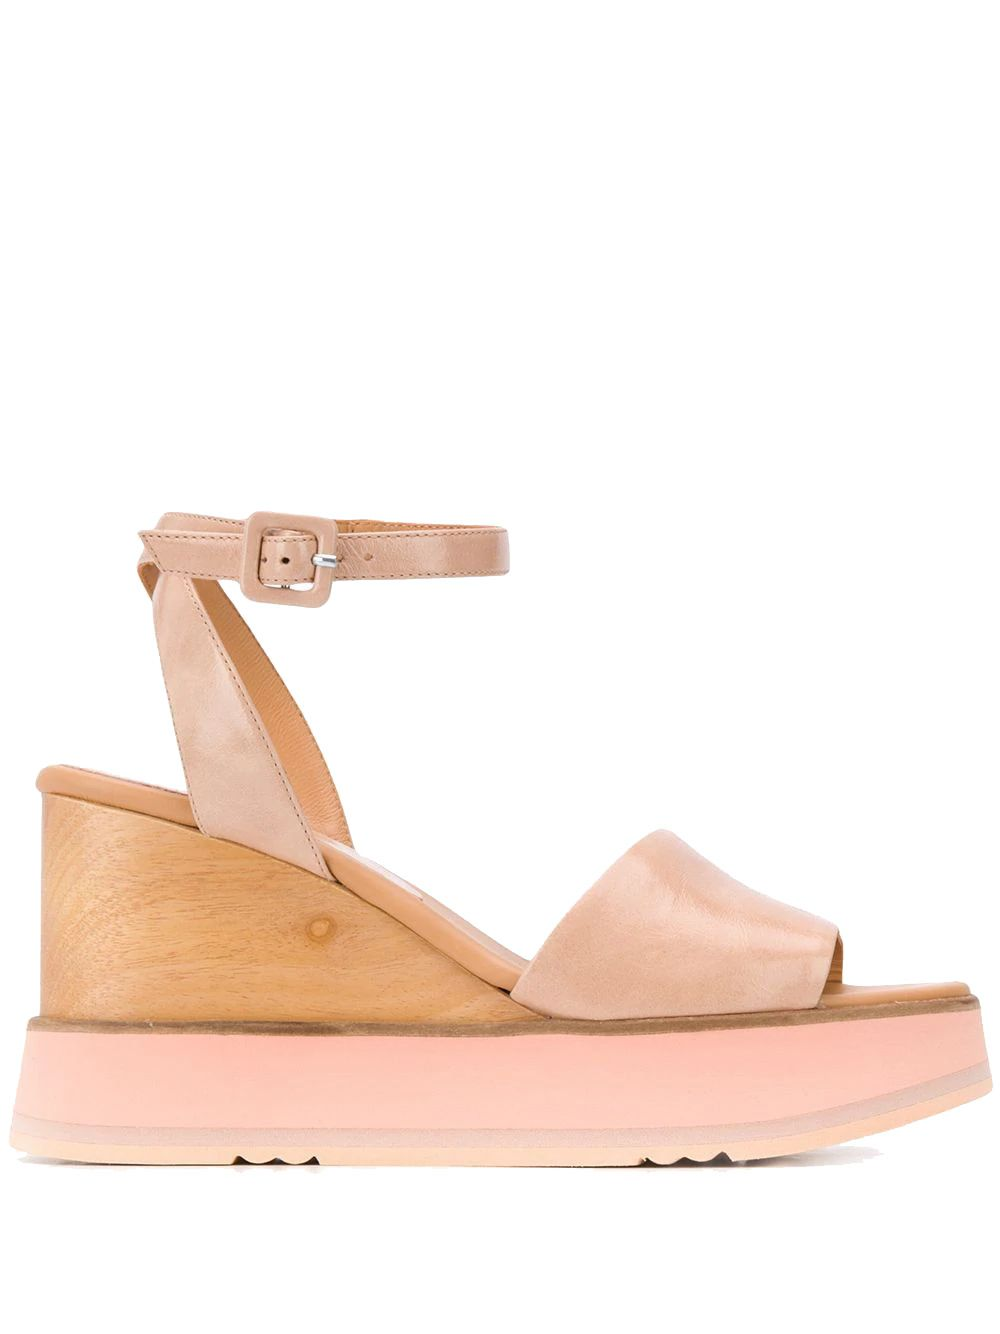 Paloma Barceló PINK LEATHER SANDALS